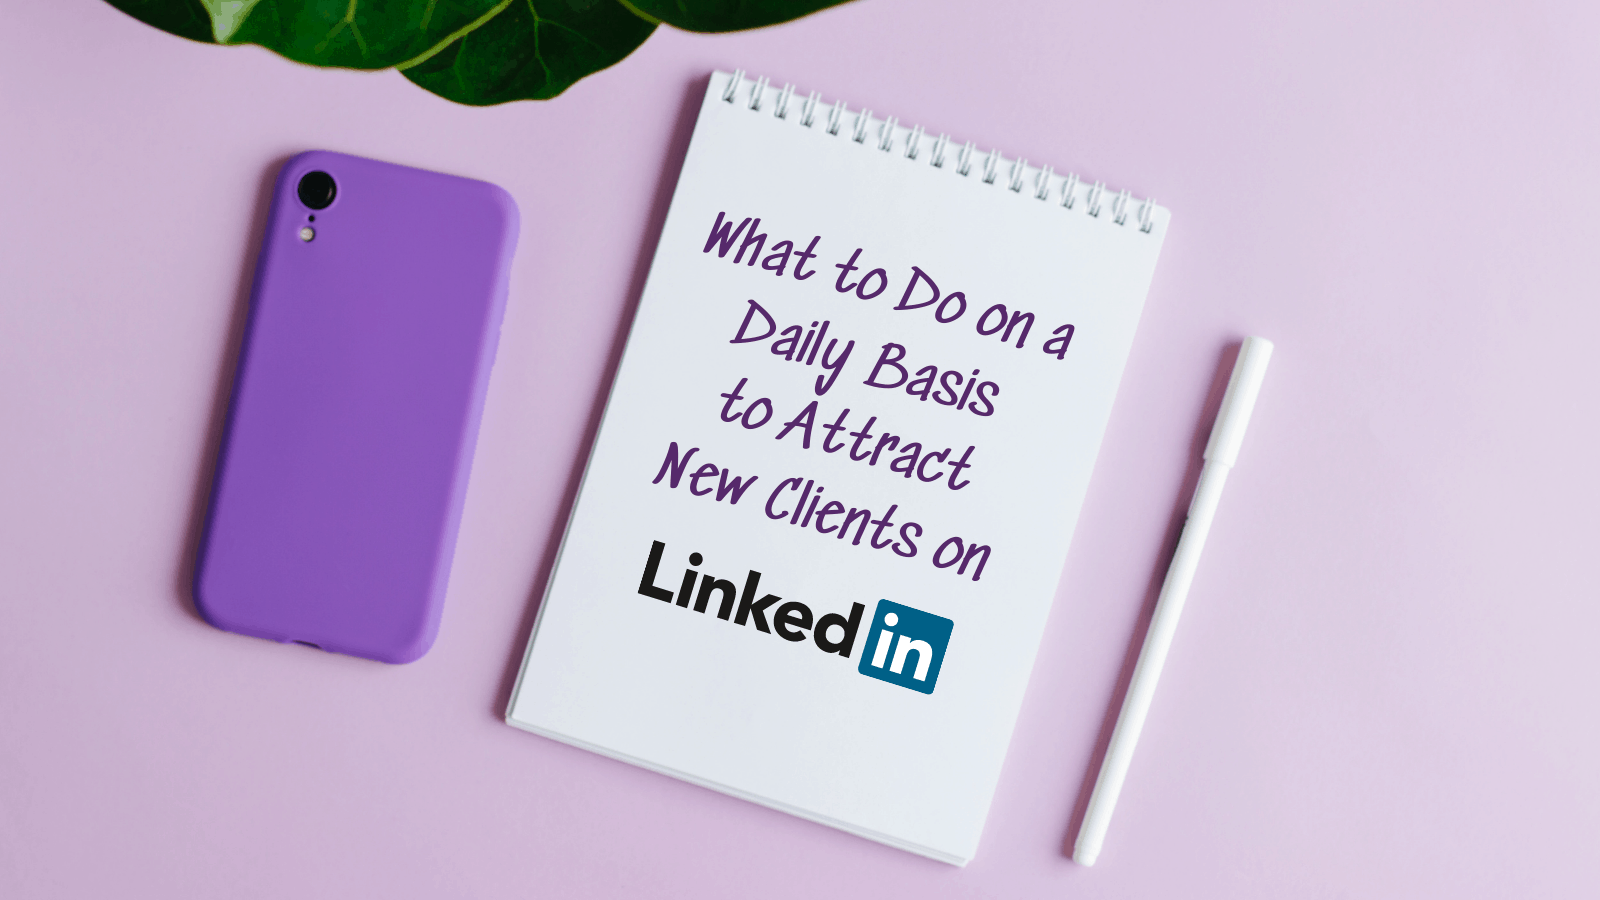 What to Do on a Daily Basis to Attract New Clients on LinkedIn